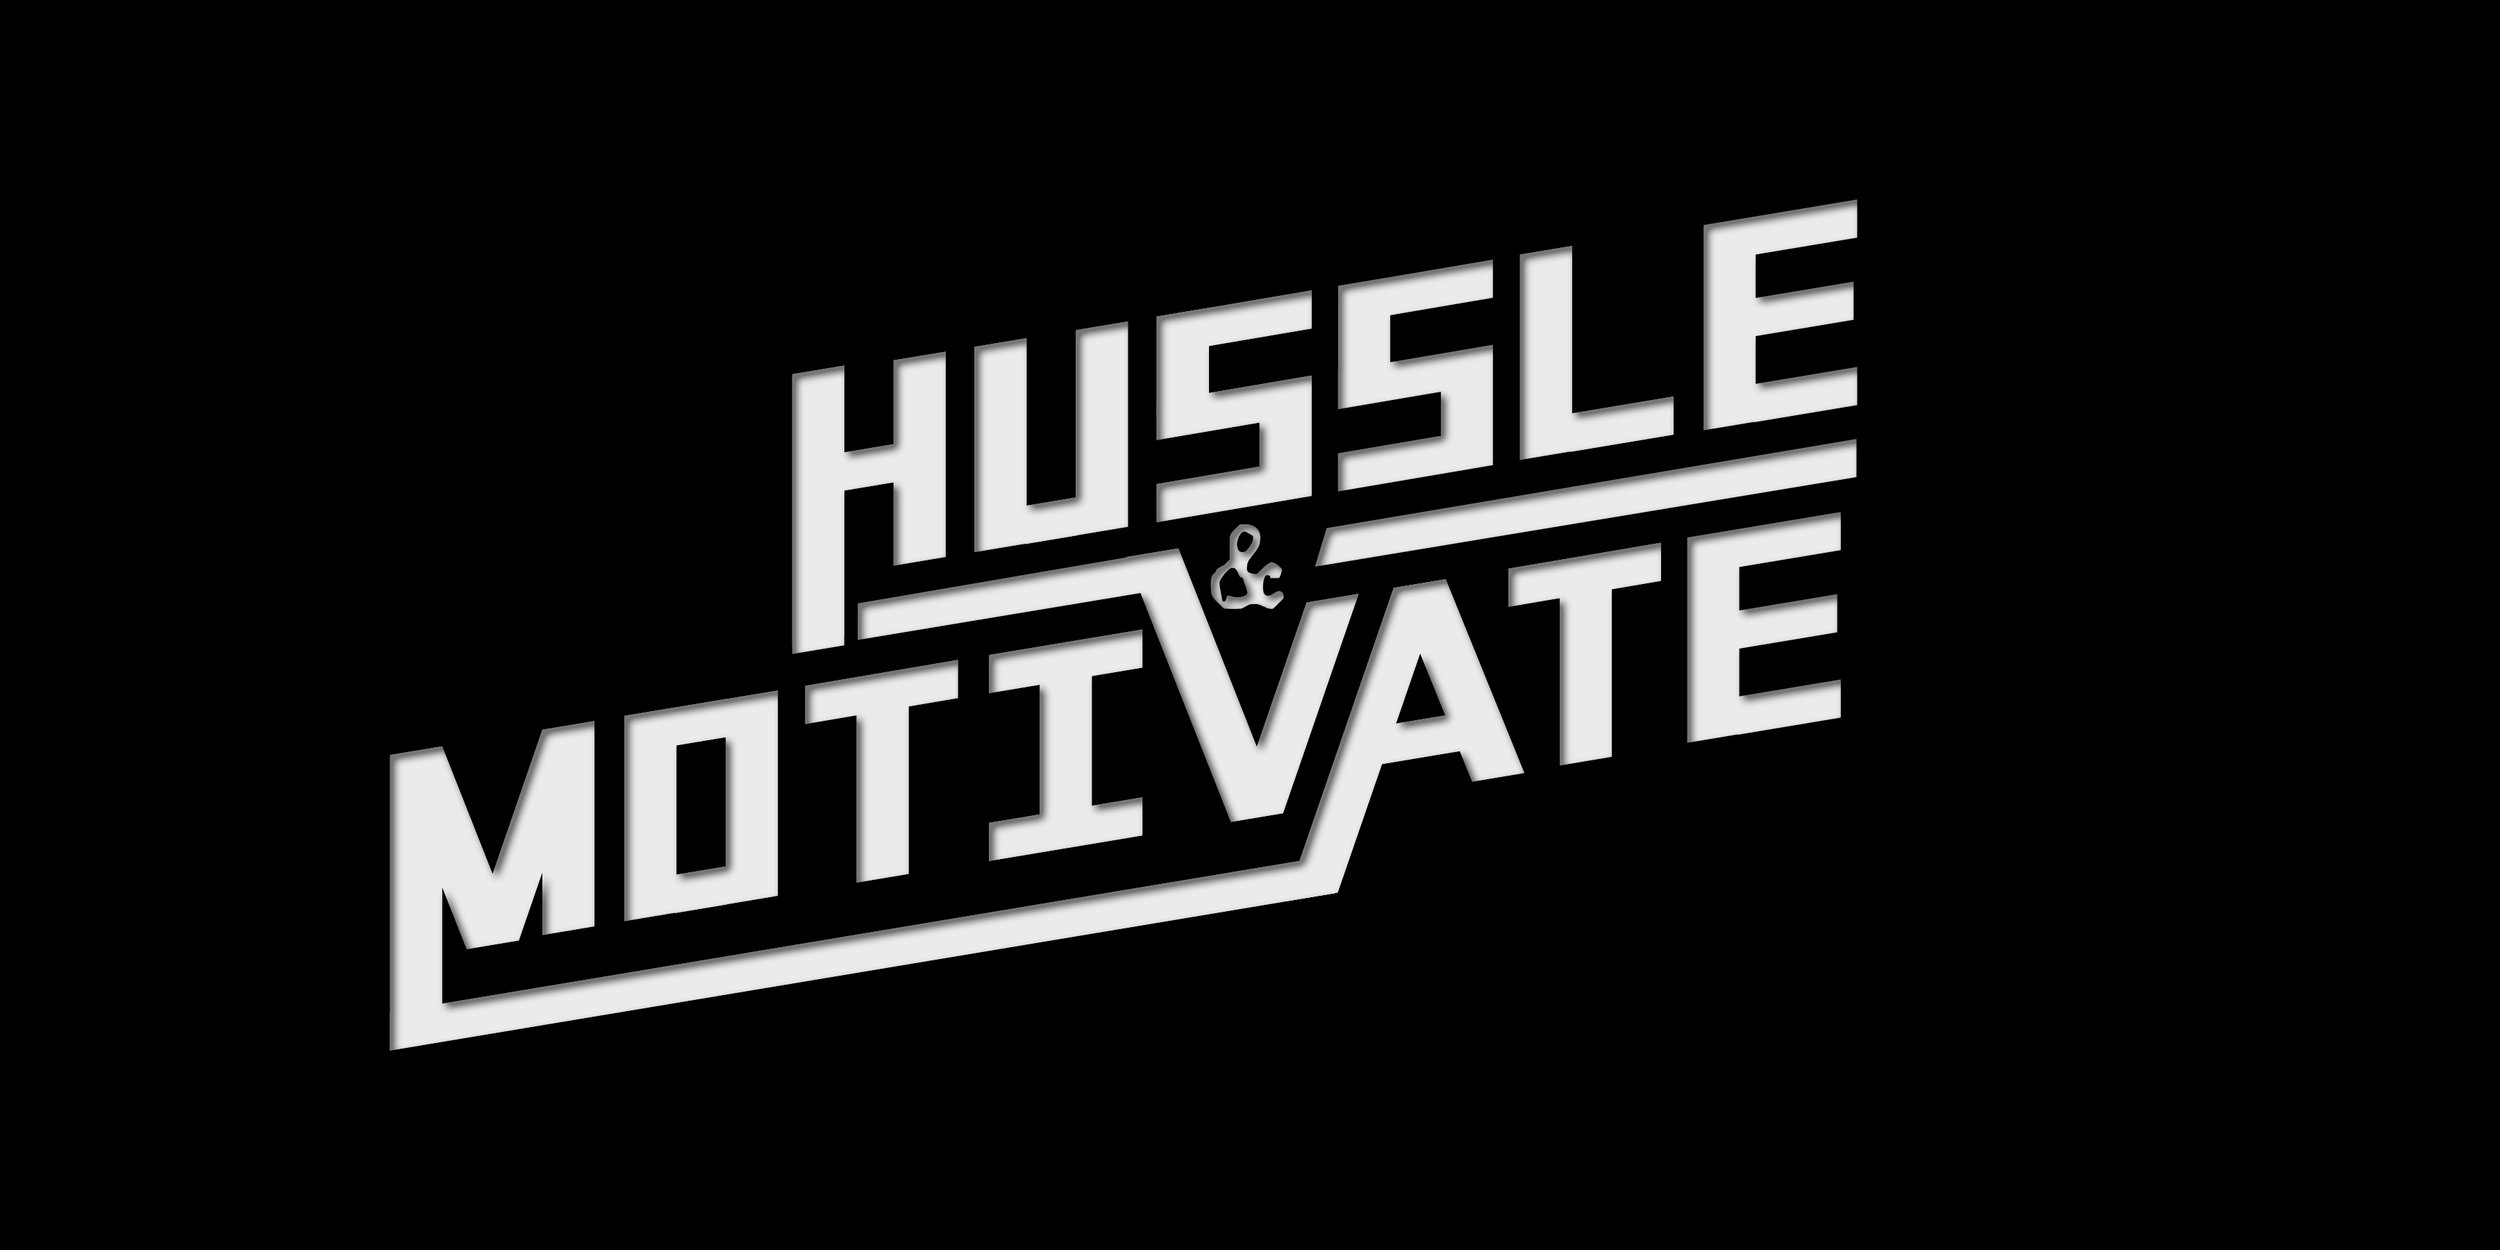 Hussle & Motivate - A custom typography tribute project for LA rapper Nipsey Hussle. Inspired by his song of the same name.